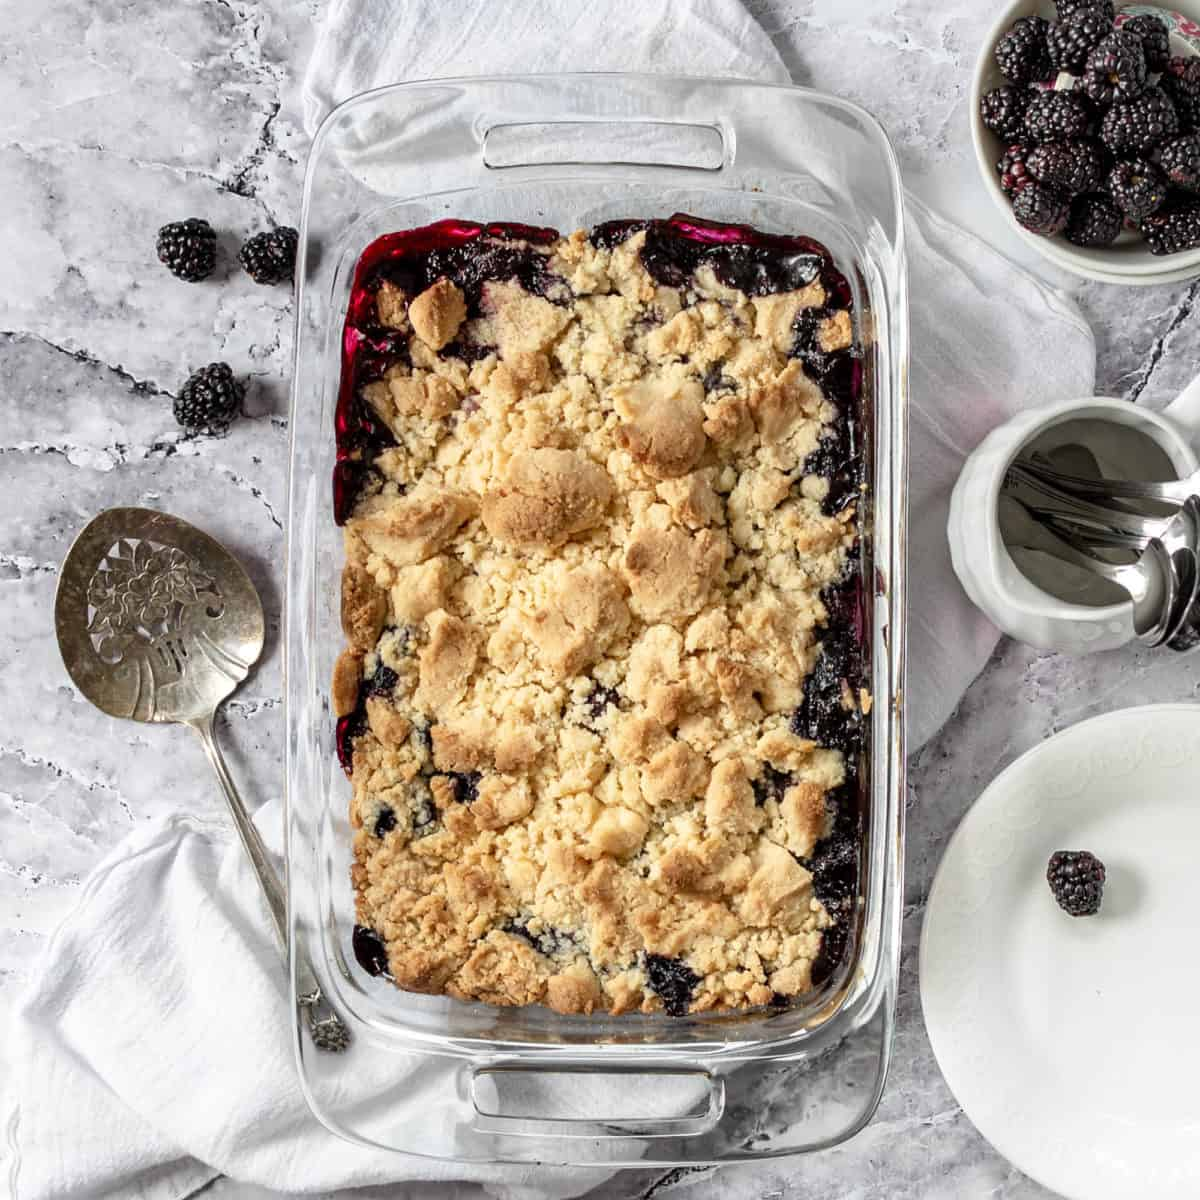 Finished blackberry cobbler dessert in a baking dish with spoons and blackberries.